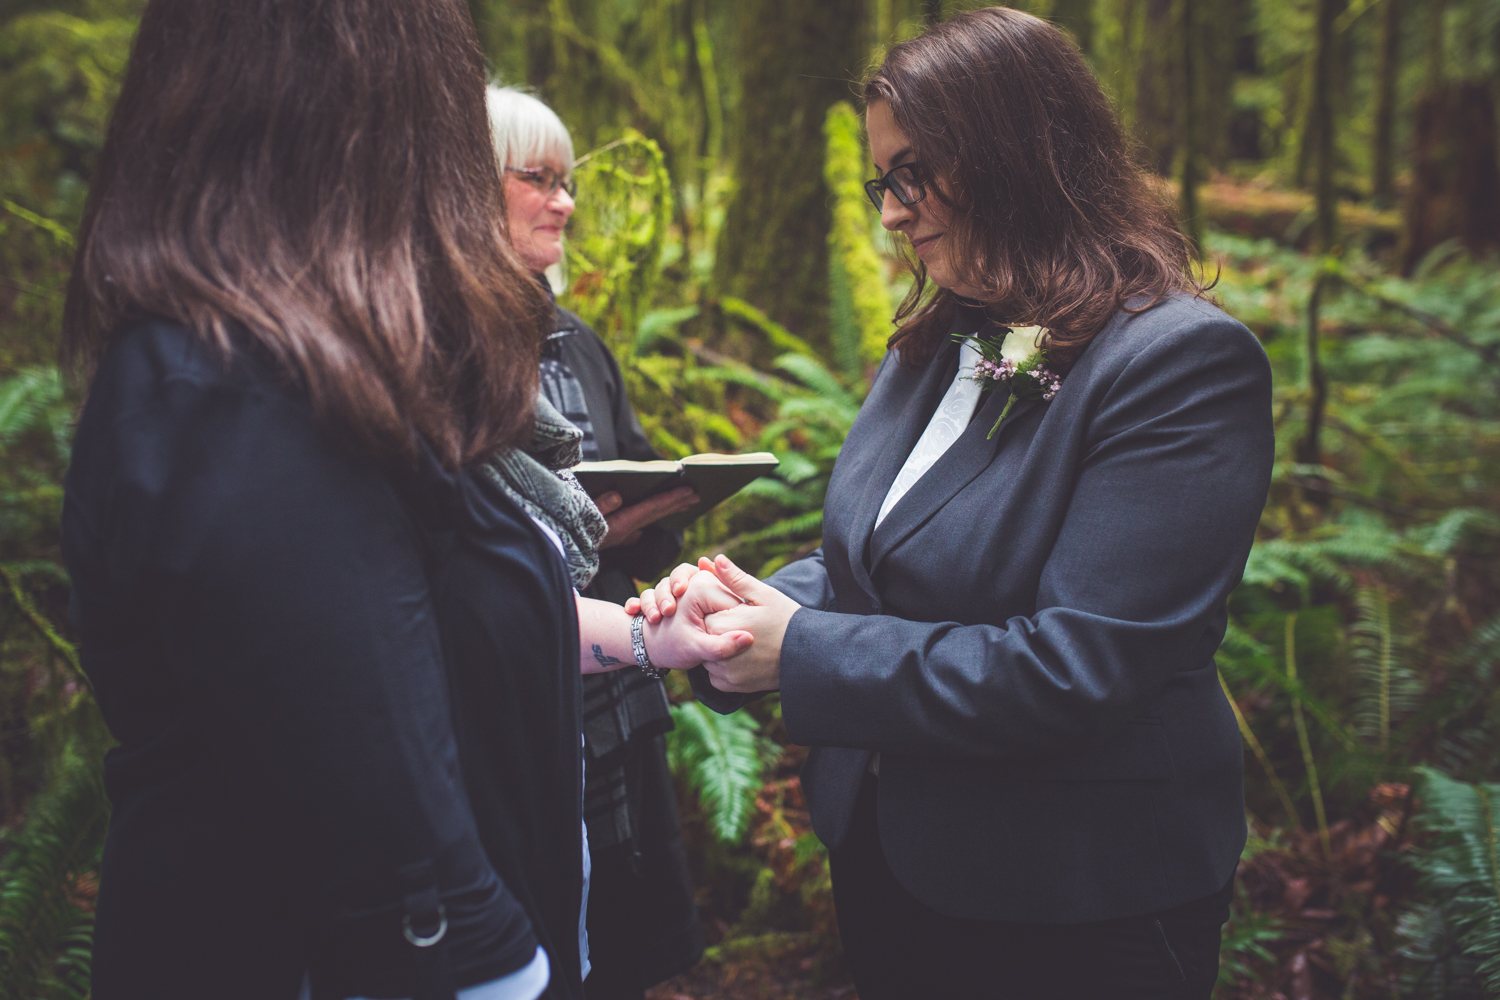 cathedral-grove-elopement-photos-22.jpg